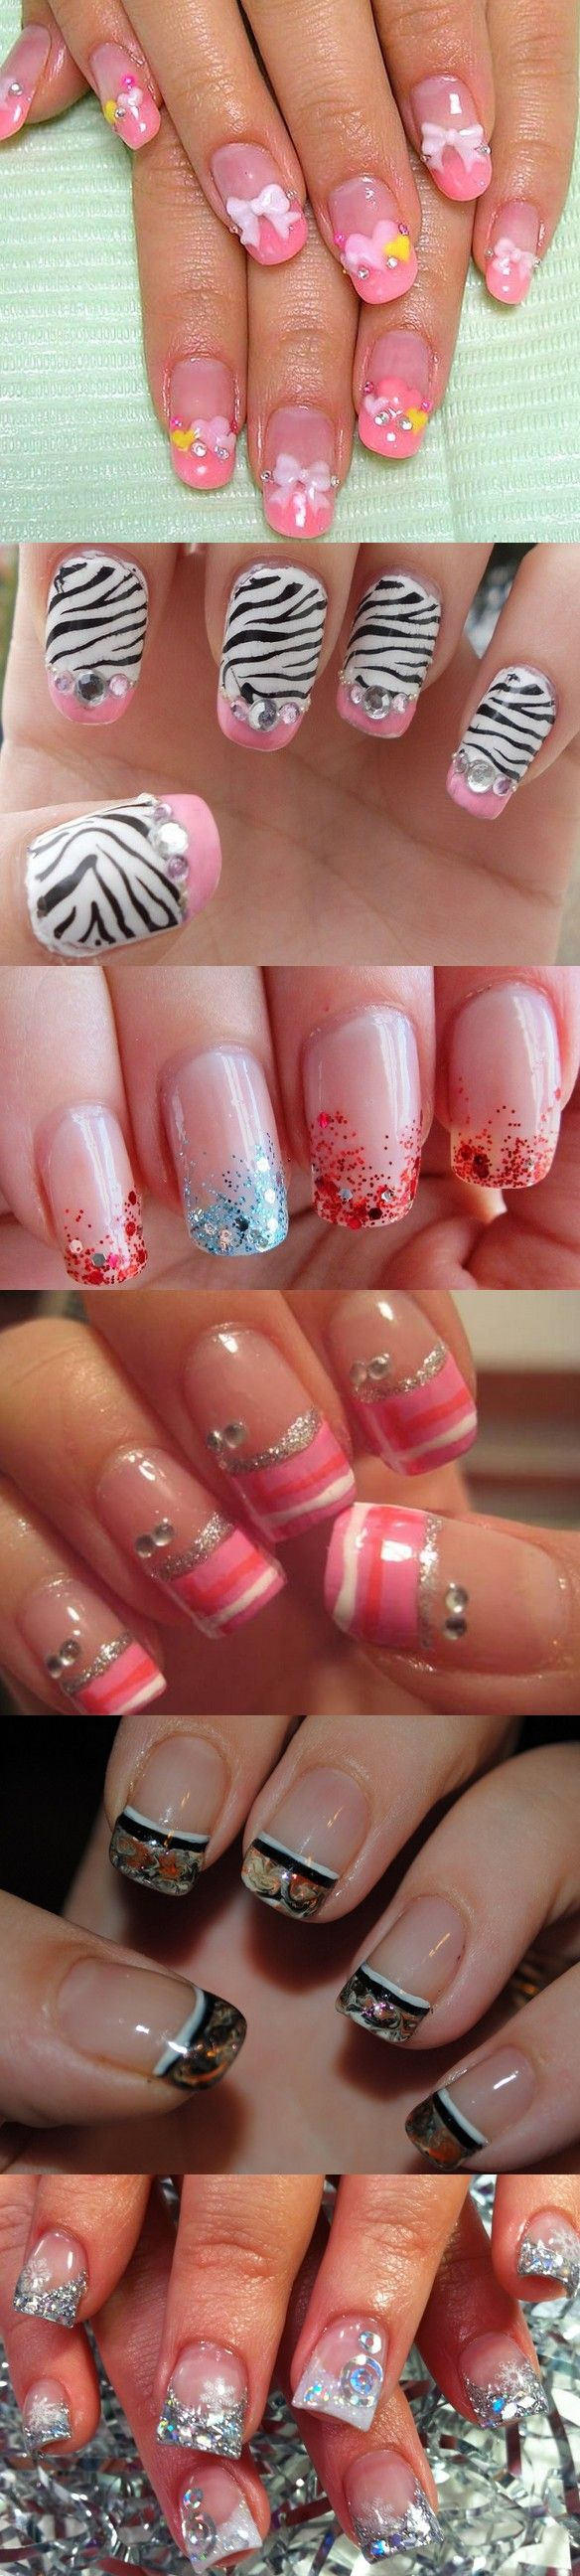 best nails images on pinterest nail design cute nails and nail